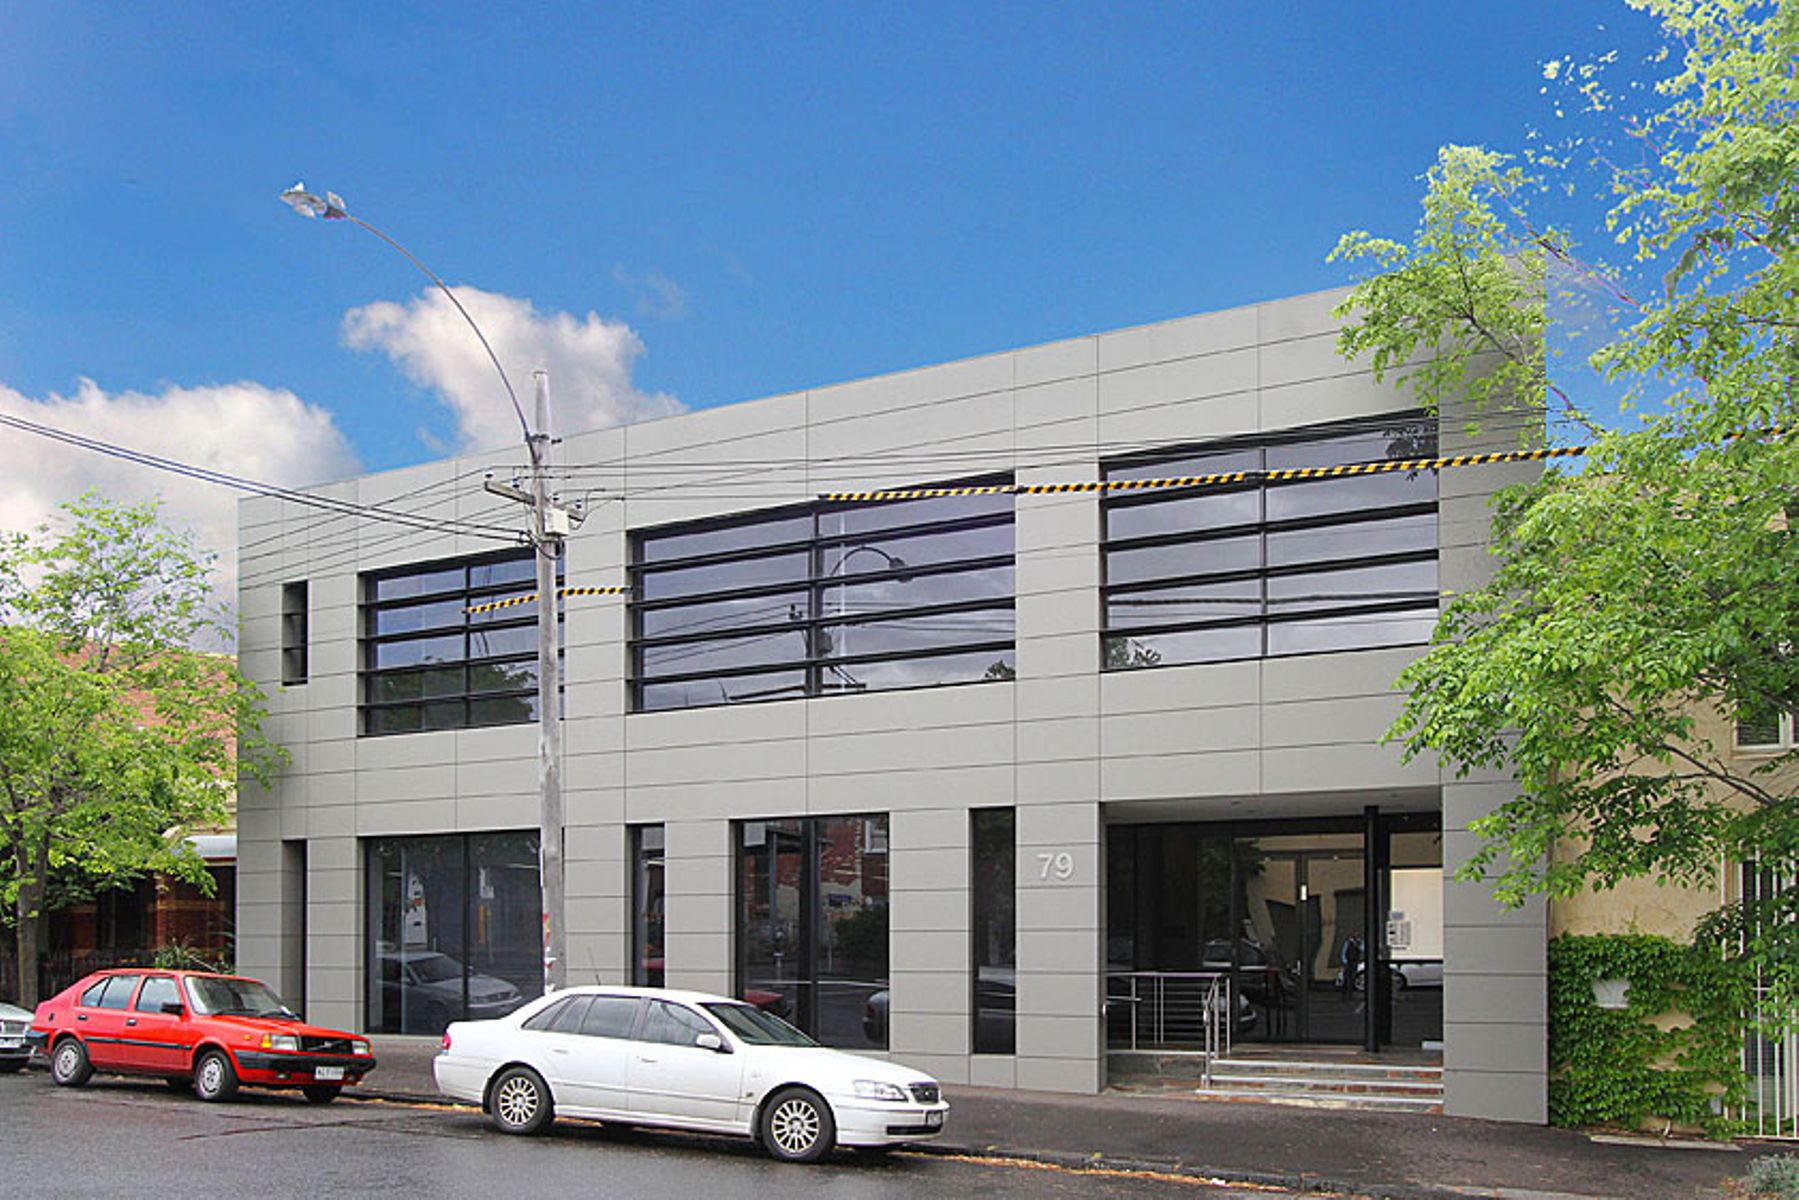 Pagan Real Estate Suite 3 75 79 Chetwynd Street North Melbourne VIC 3051